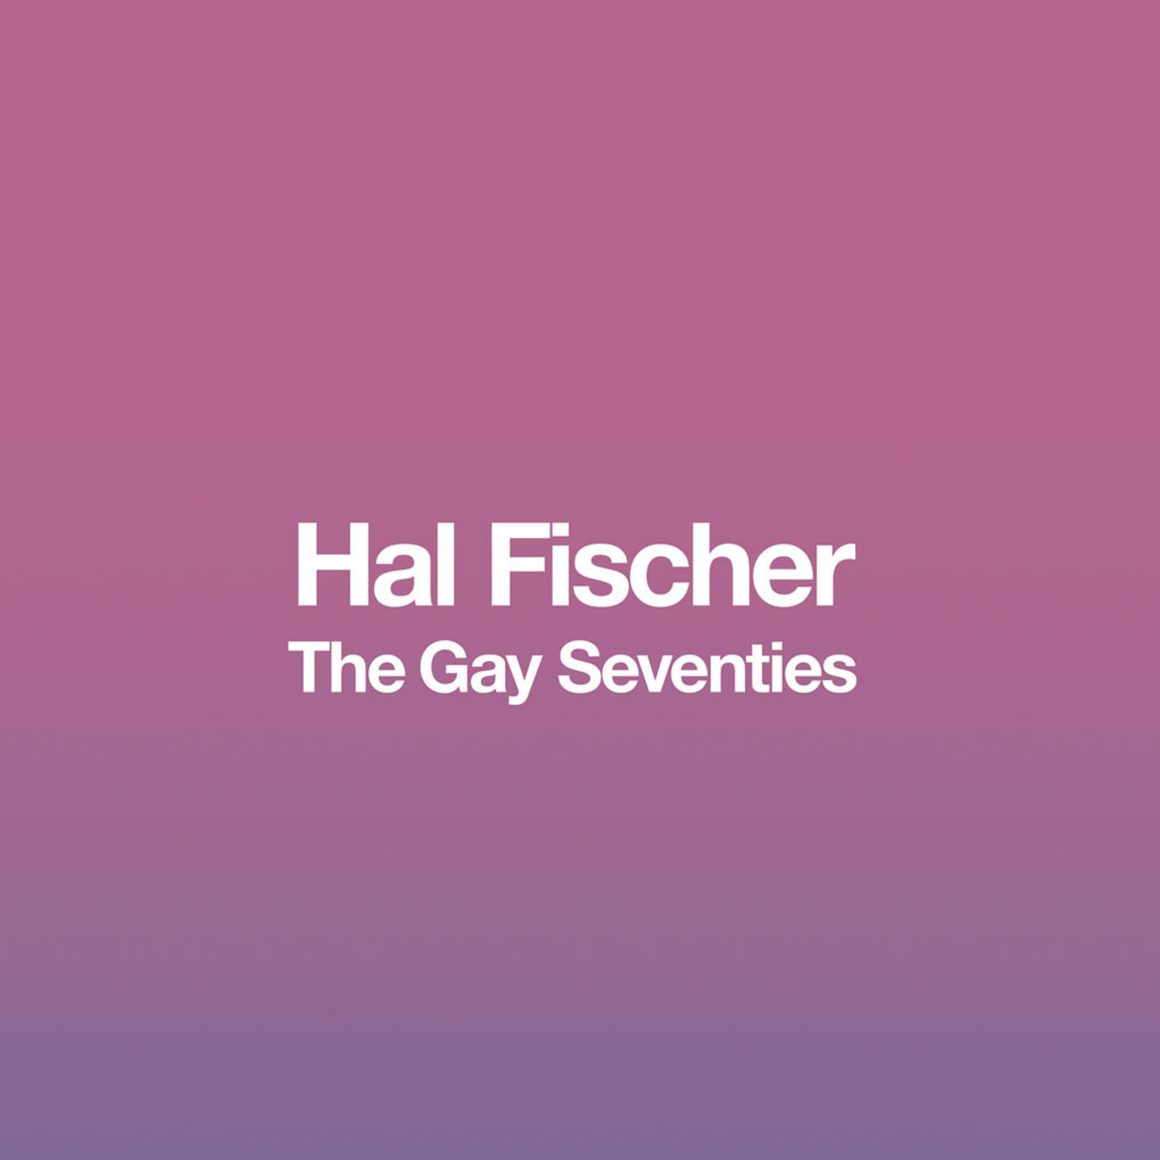 HAL FISCHER: THE GAY SEVENTIES - Bowerbird on Argyle